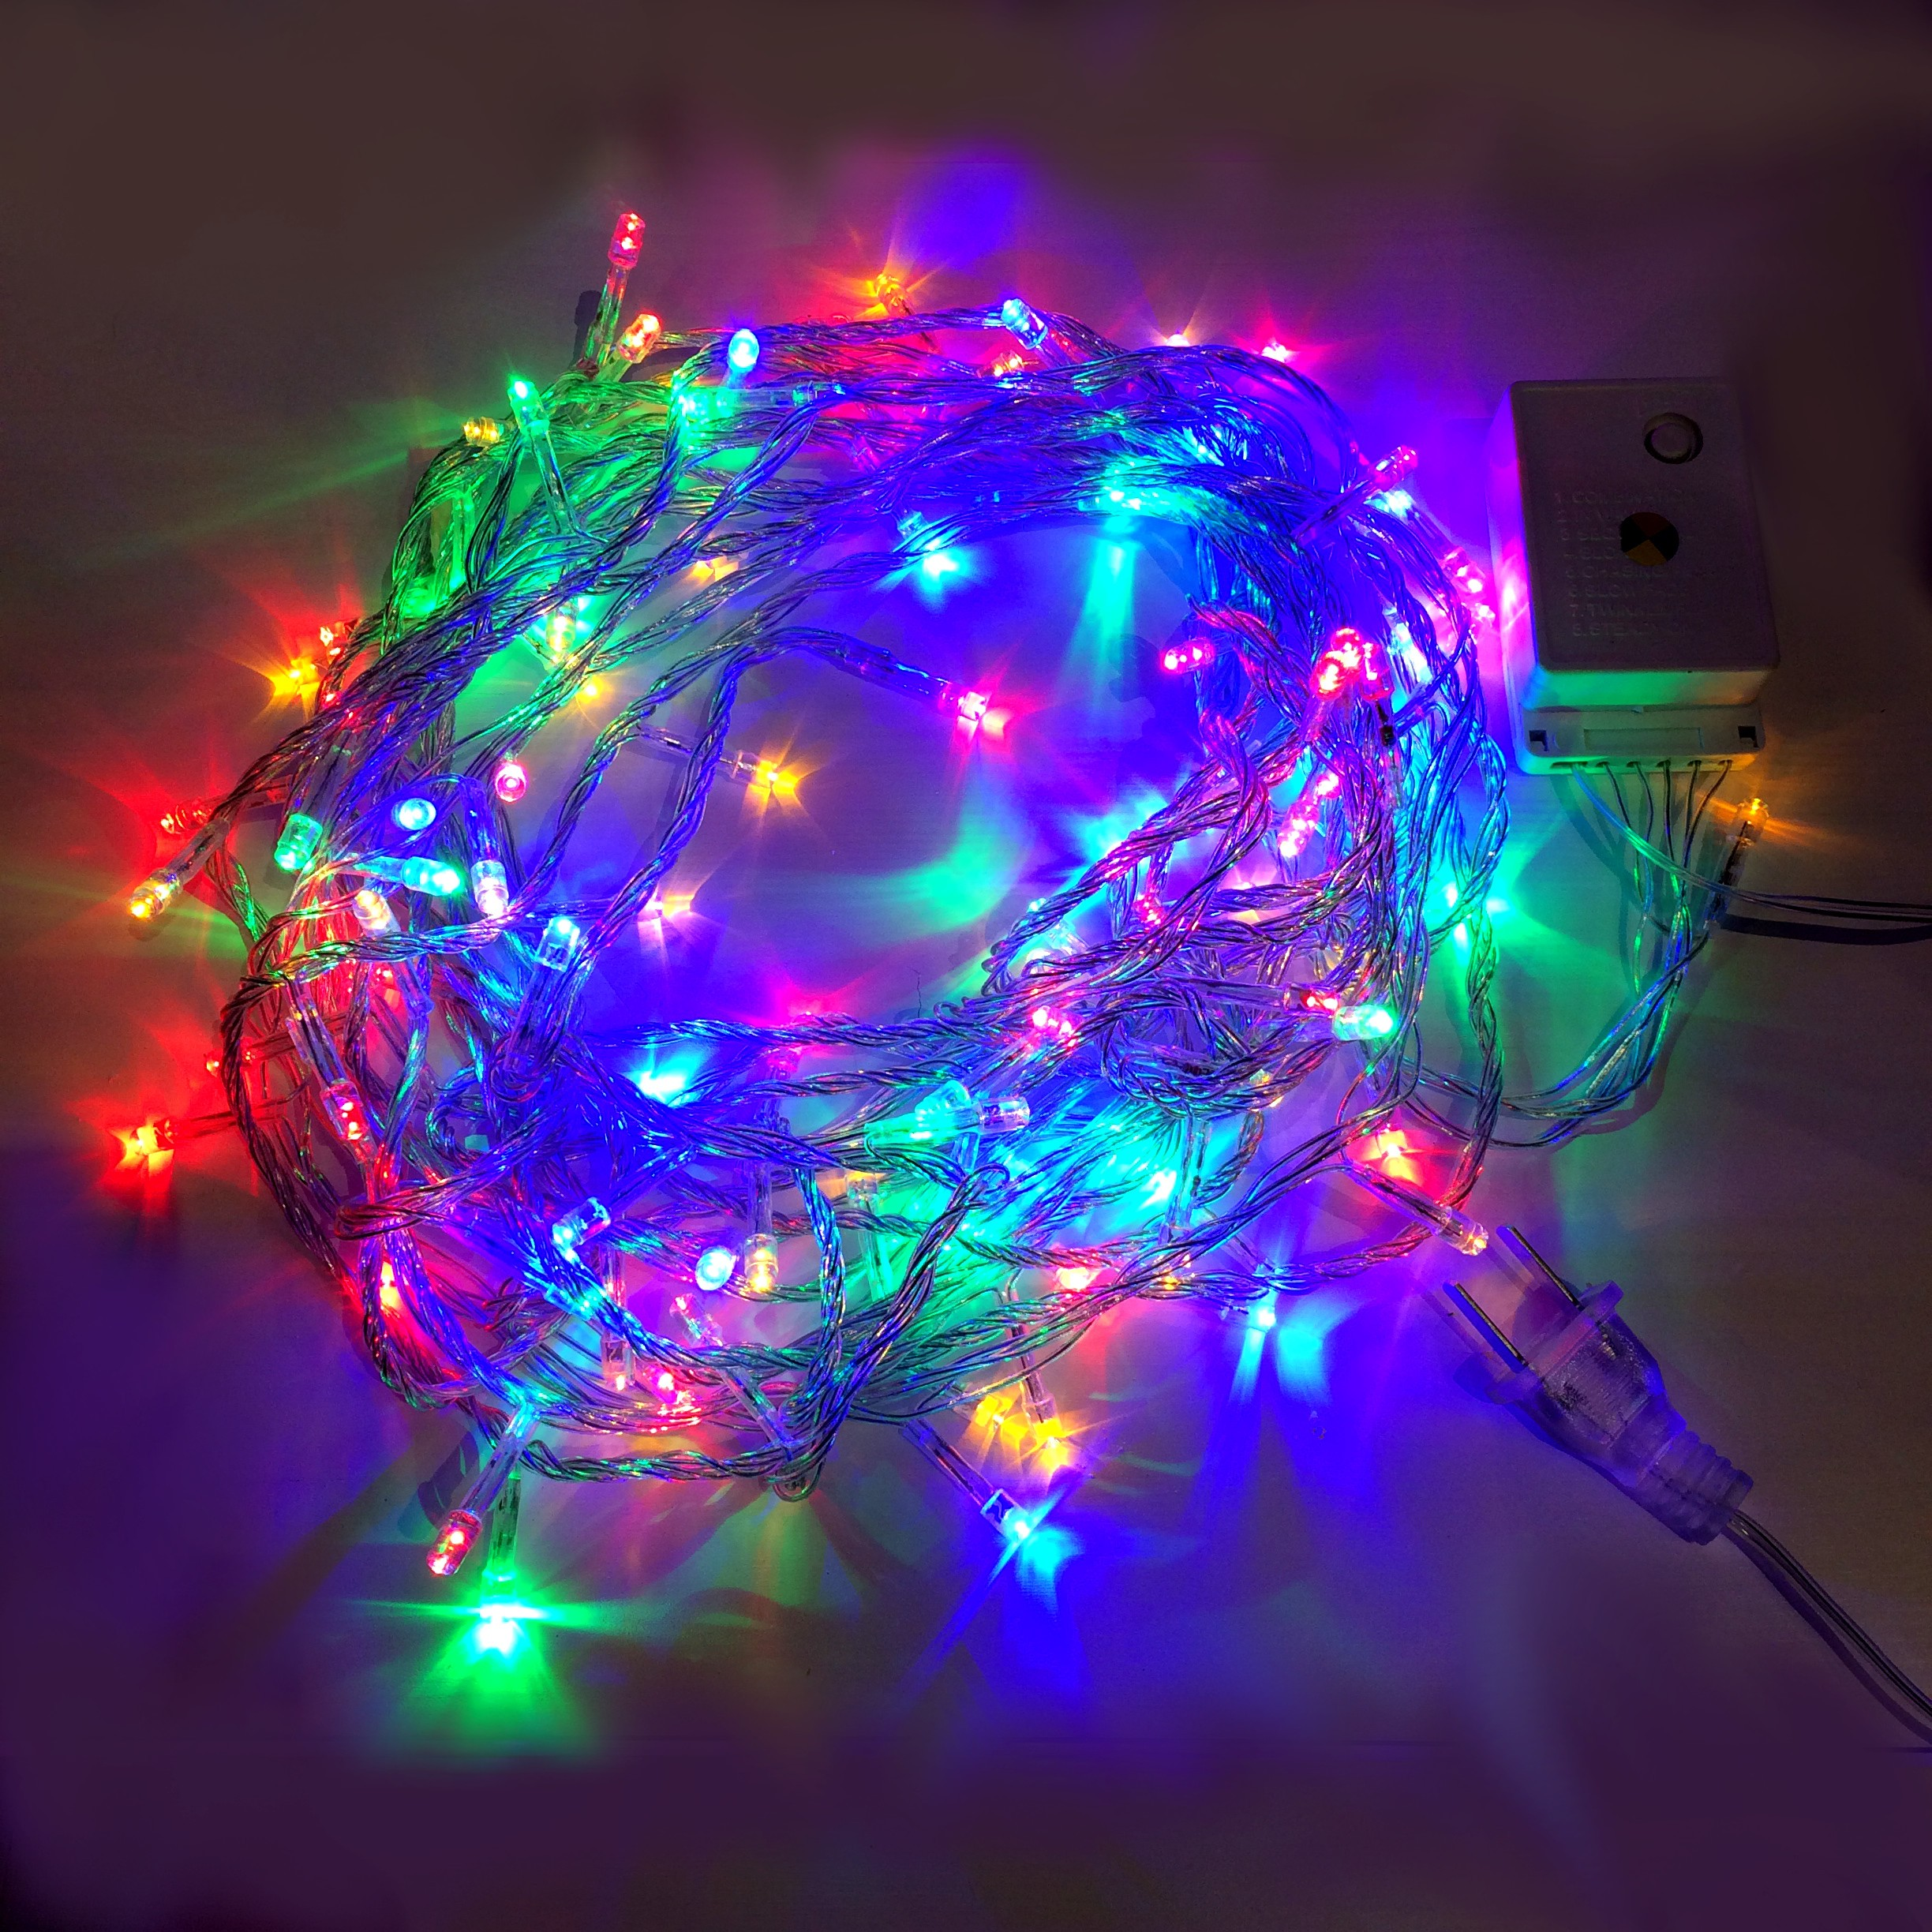 Rgyb 10m 8 Mode Led String Lights